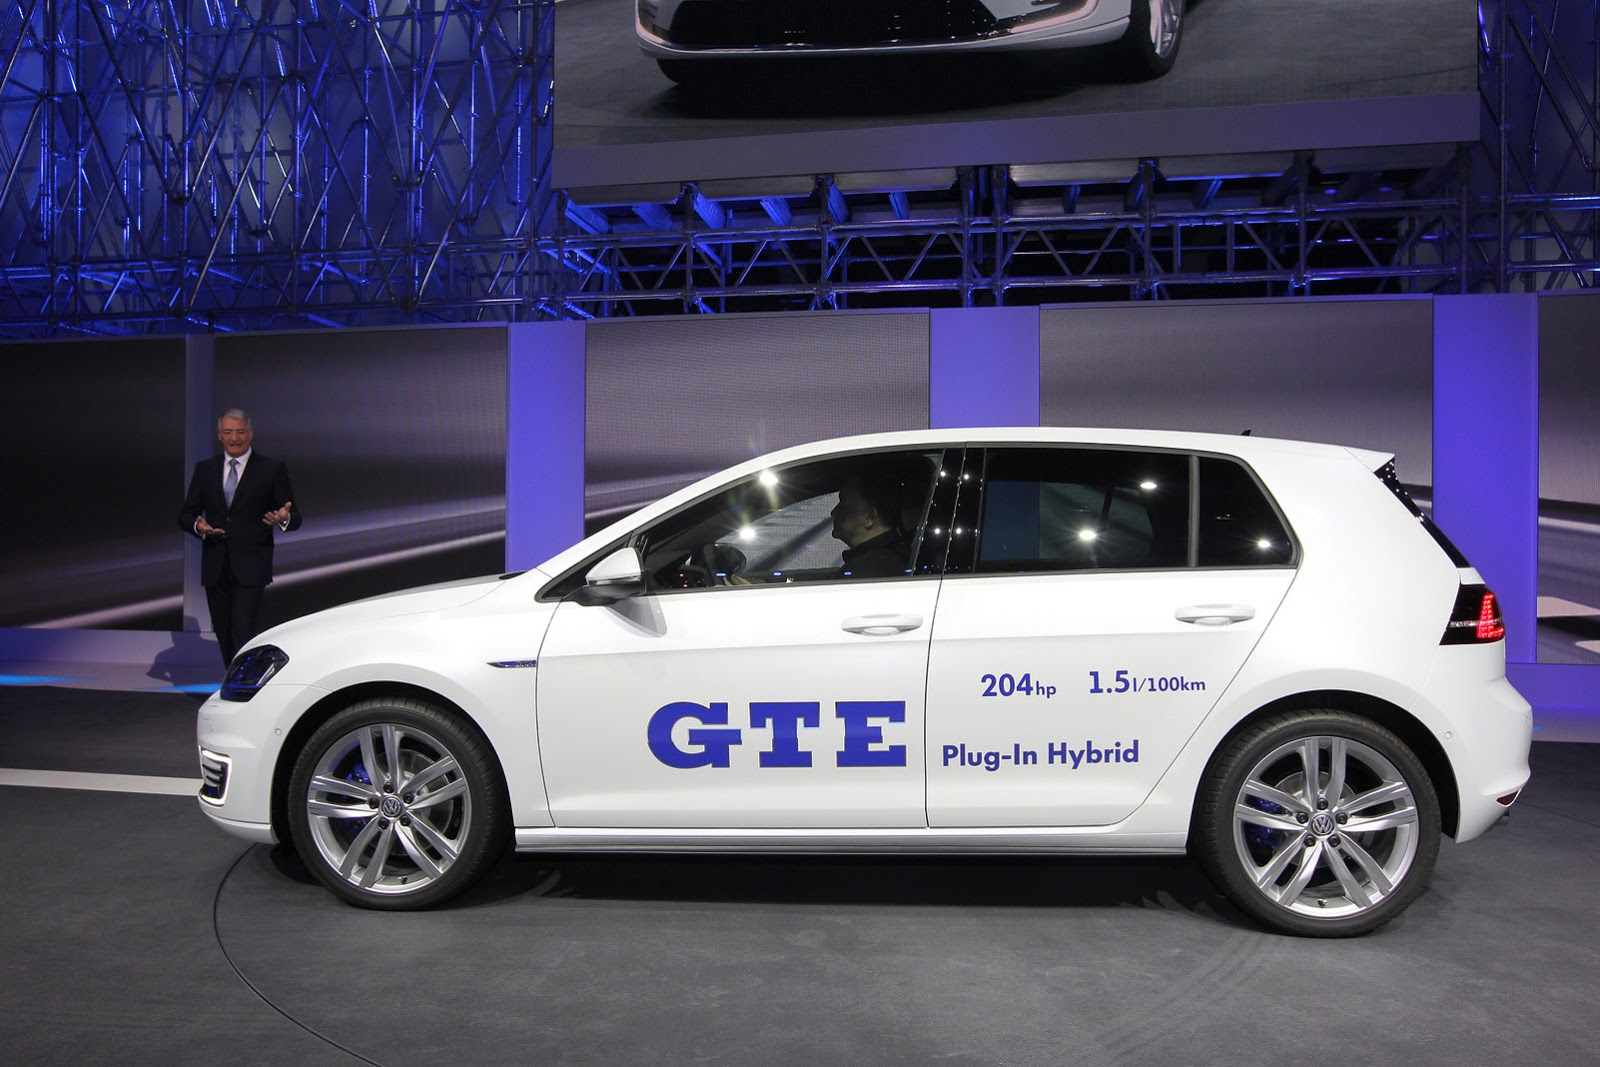 vw golf gte is the gti of plug in hybrids fooyoh. Black Bedroom Furniture Sets. Home Design Ideas